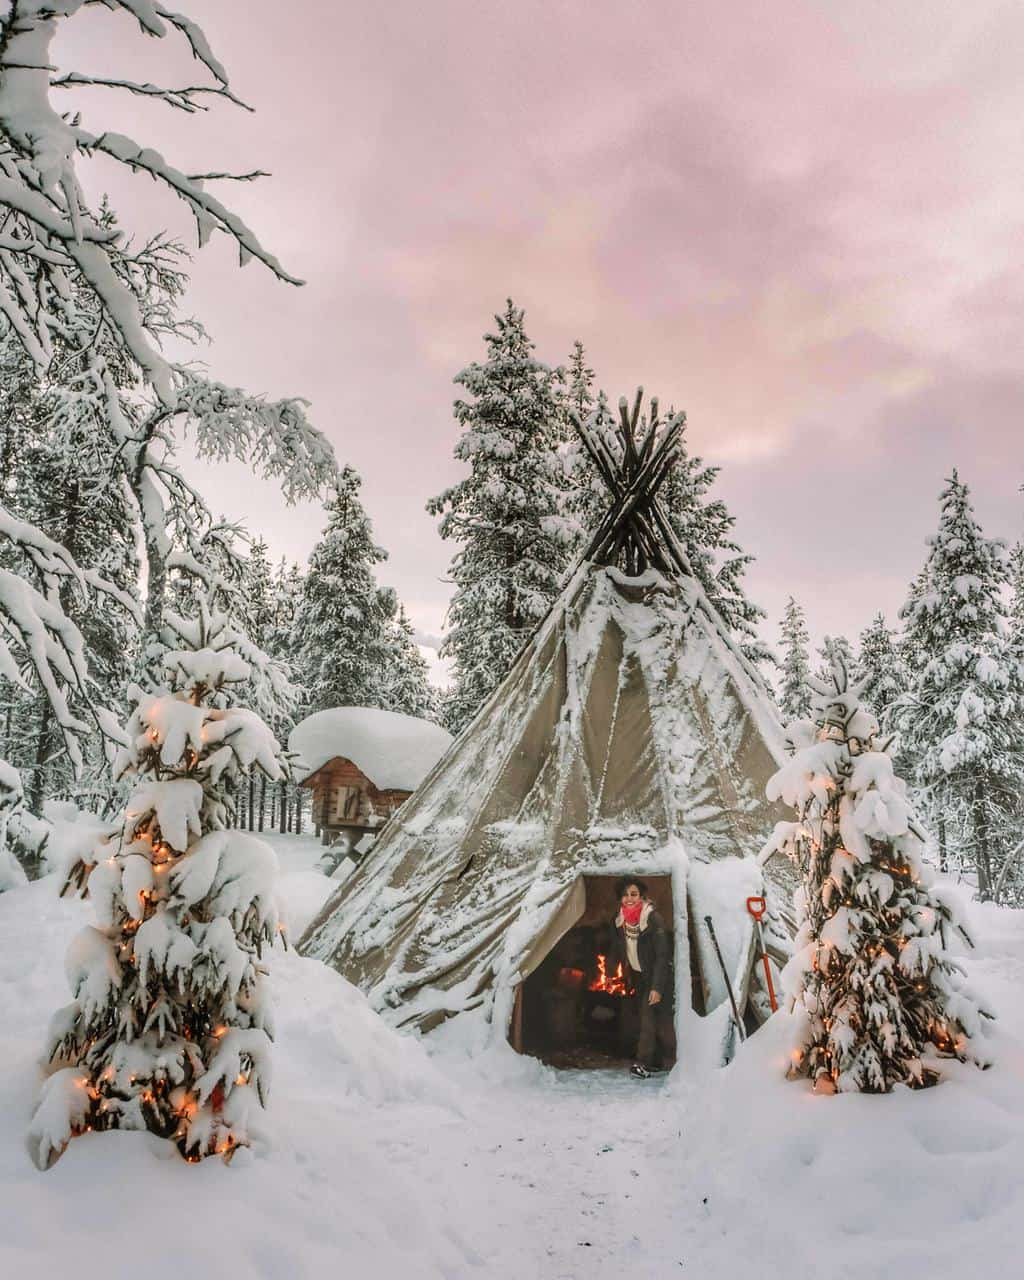 a girl stepping out of a snow covered teepee Finnish Lapland, Lapland destinations, Lapland Finland, Inghams